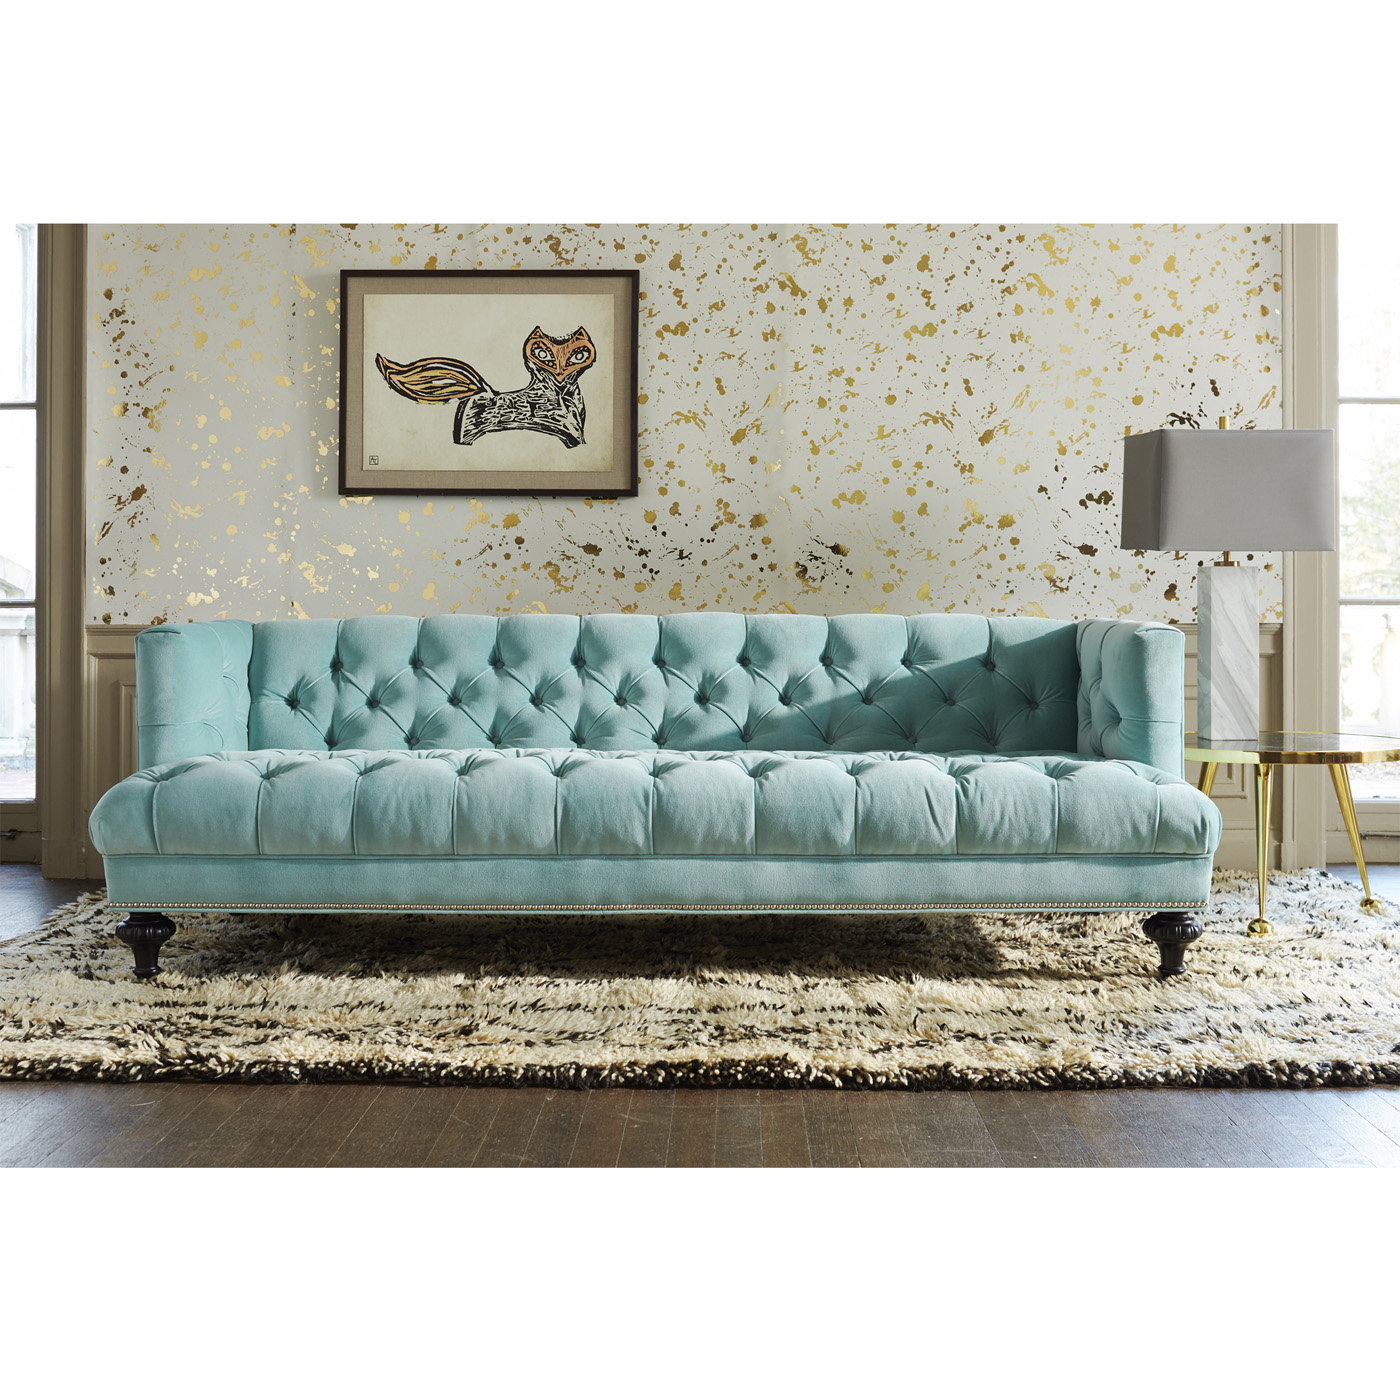 Best Sectional Sofas Grande Prairie Baxter Arm Sofa Modern Furniture Intended For Well Known Alder Grande Ii Sofa Chairs (View 6 of 20)